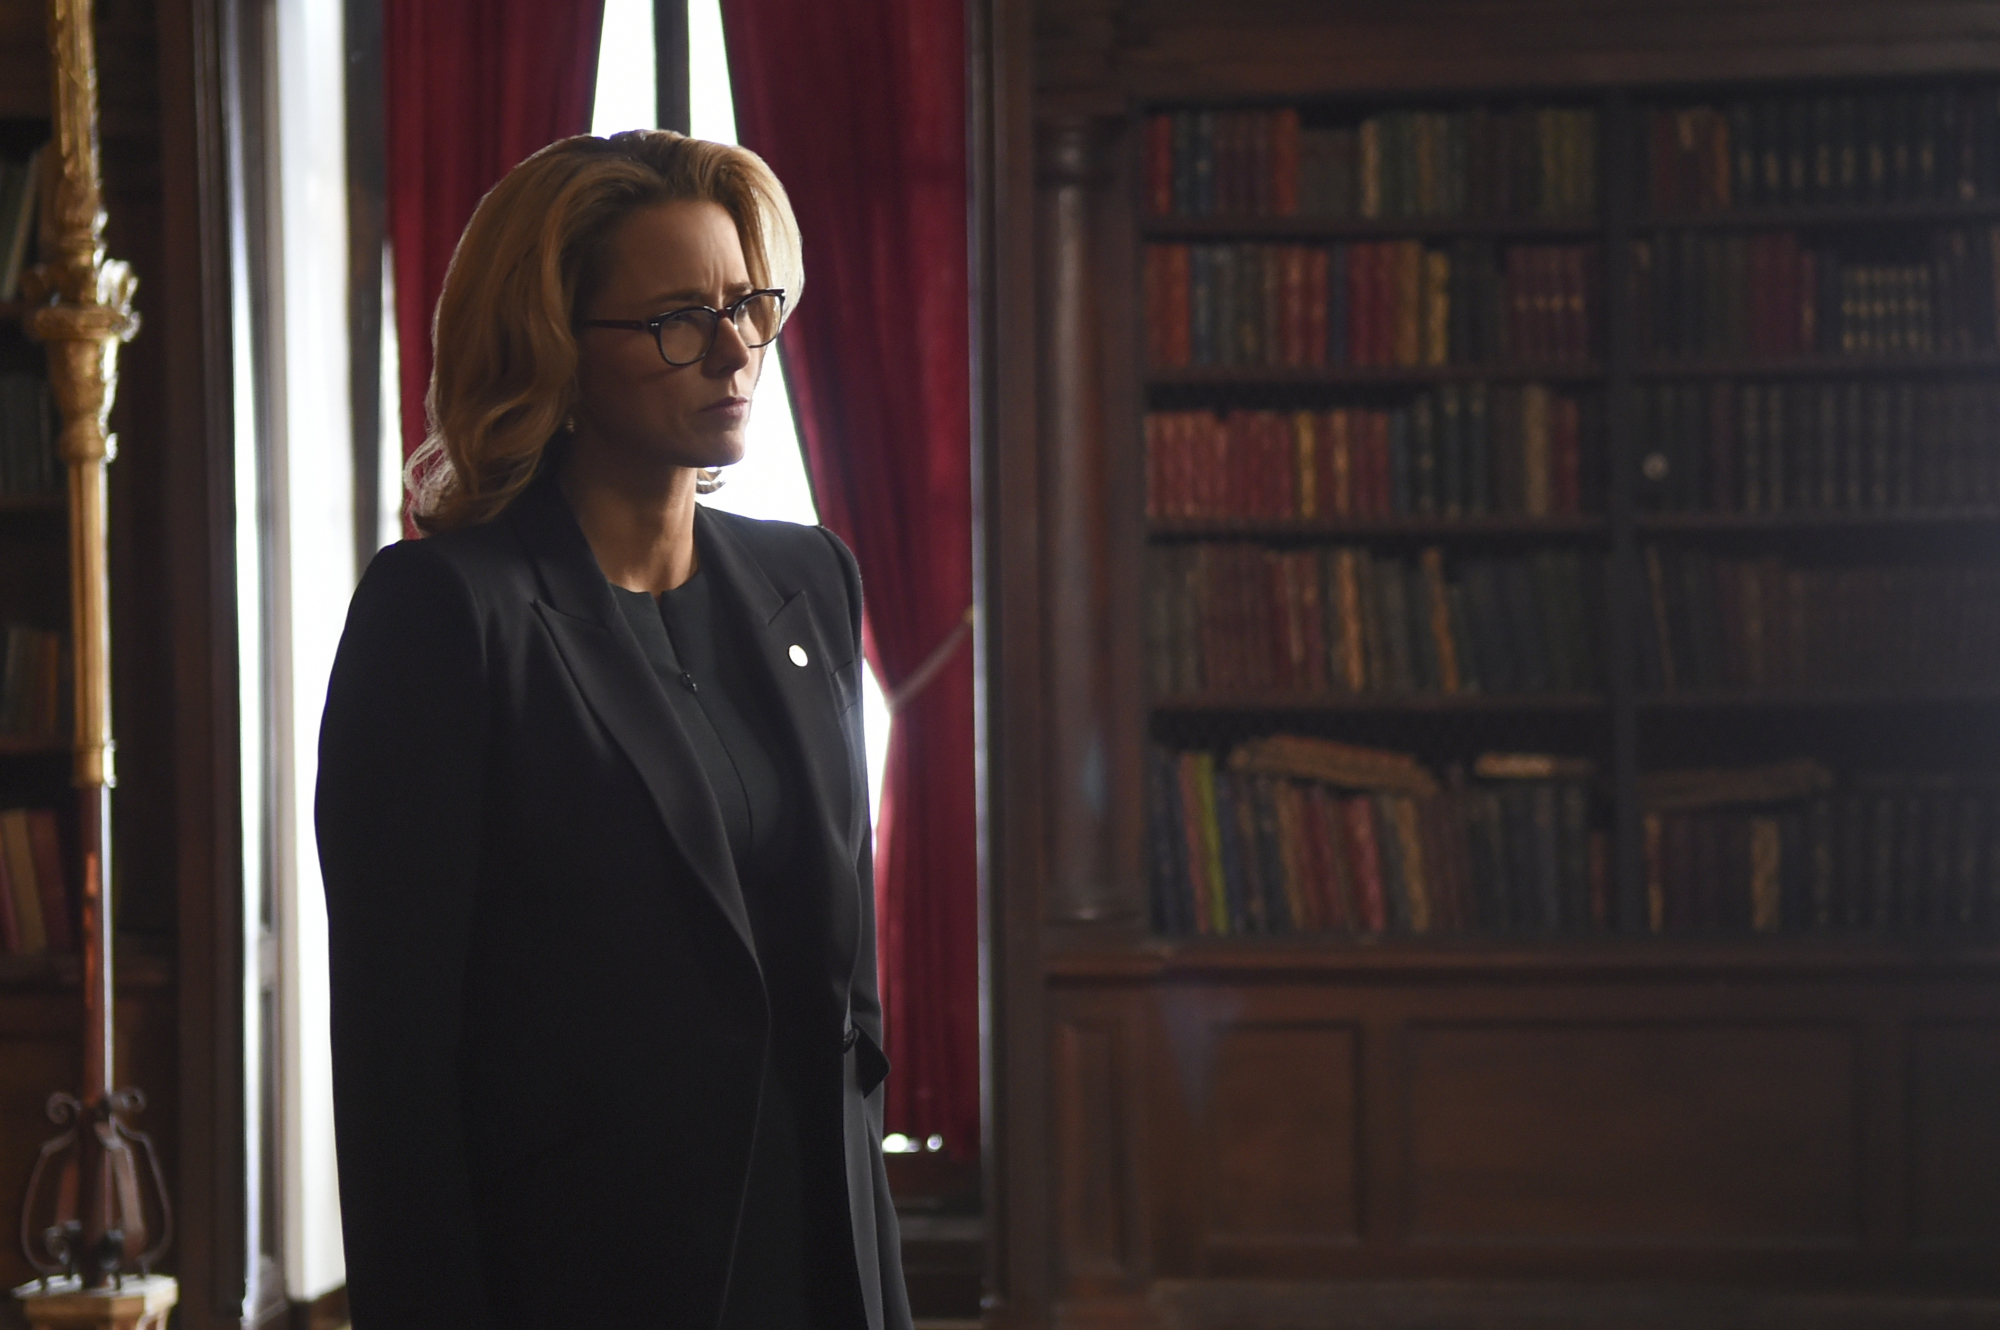 One Media's 'Clair de Lune' featured on CBS' Madam Secretary